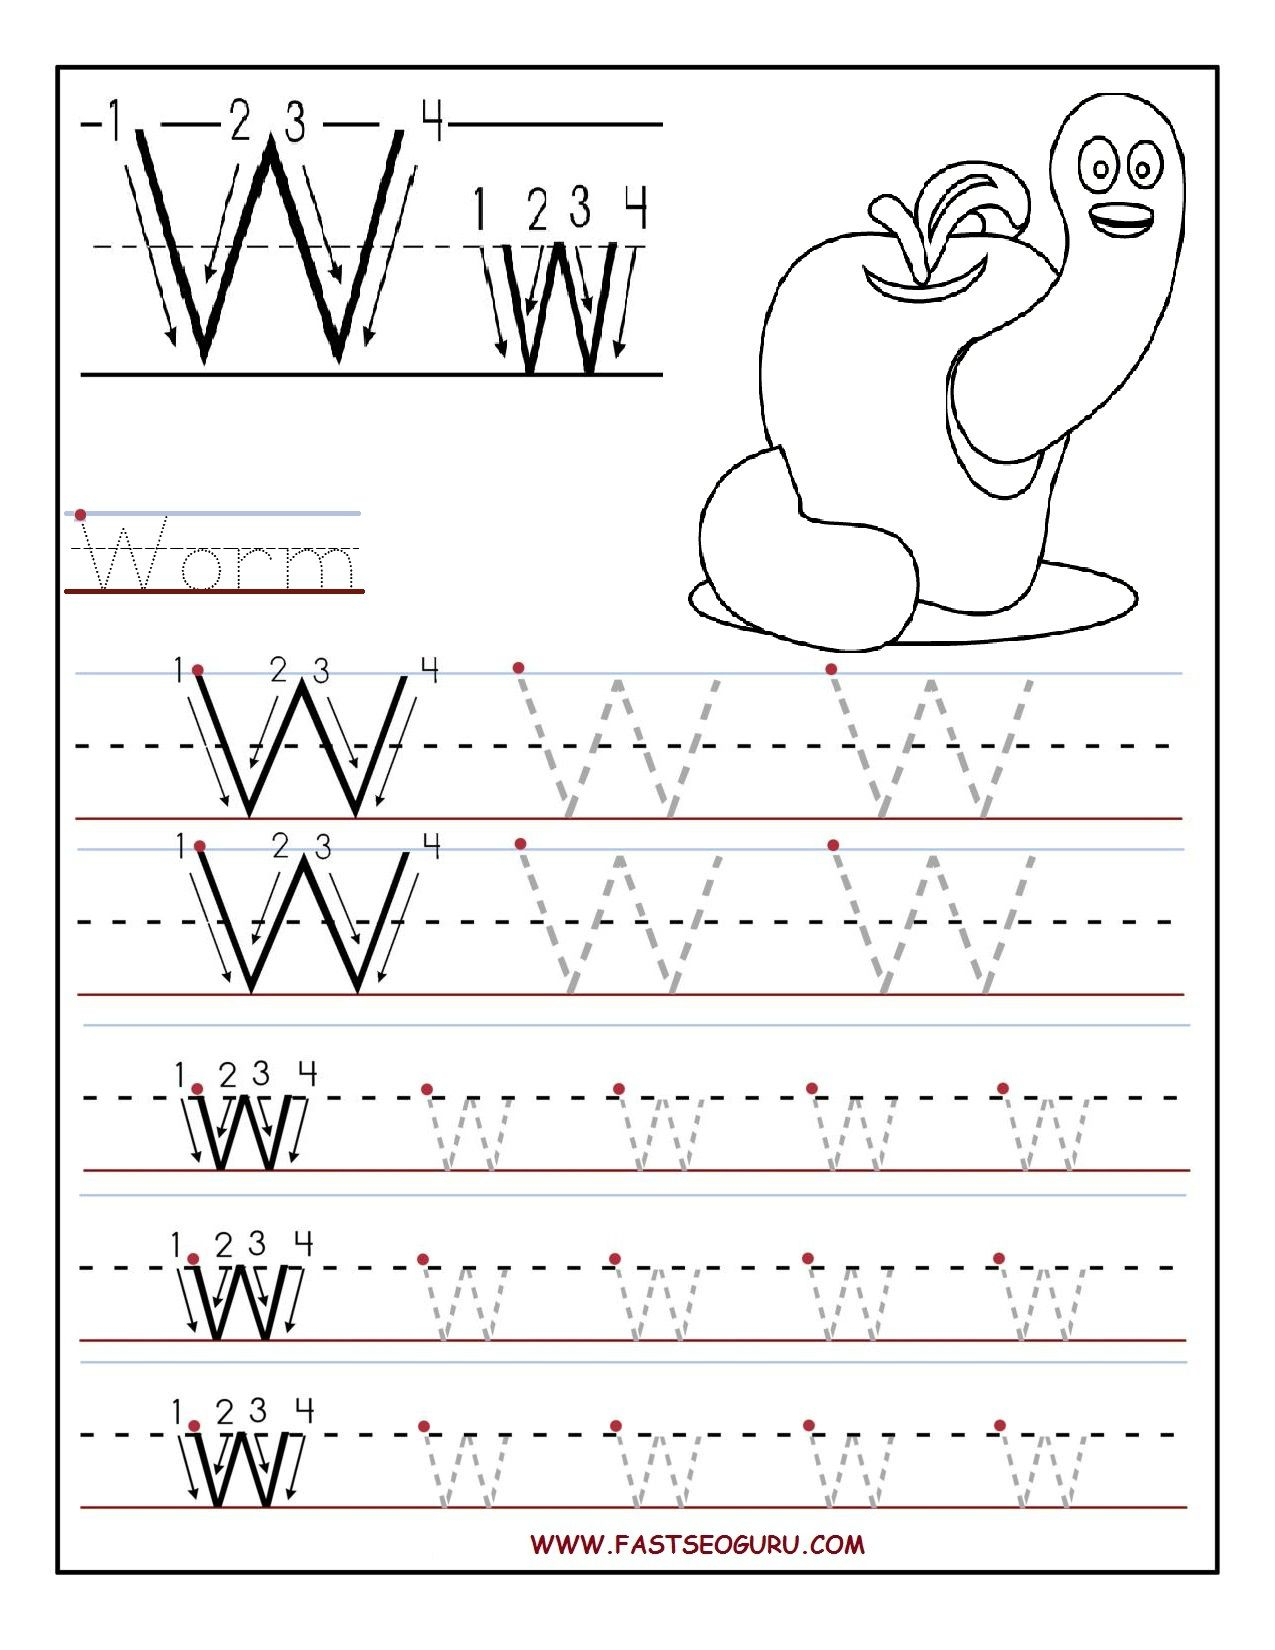 Printable Letter W Tracing Worksheets For Preschool regarding Action Alphabet Tracing Letters